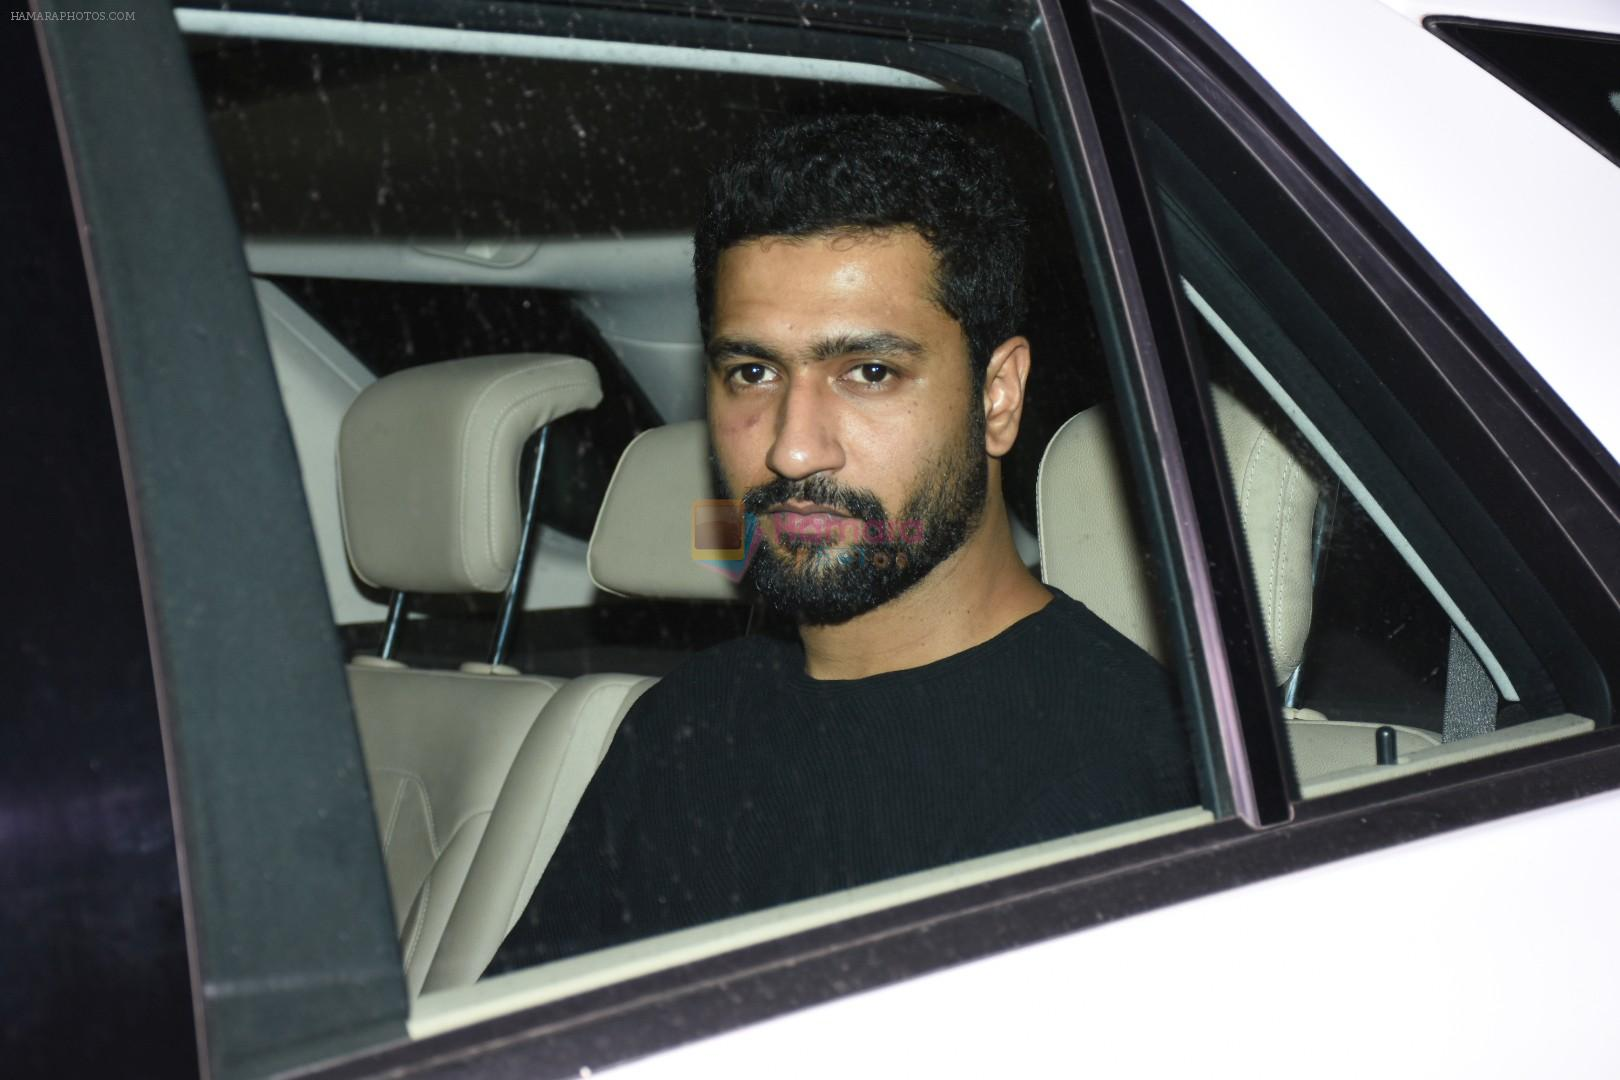 Vicky Kaushal attend party at Karan Johar's house in bandra on 12th June 2019